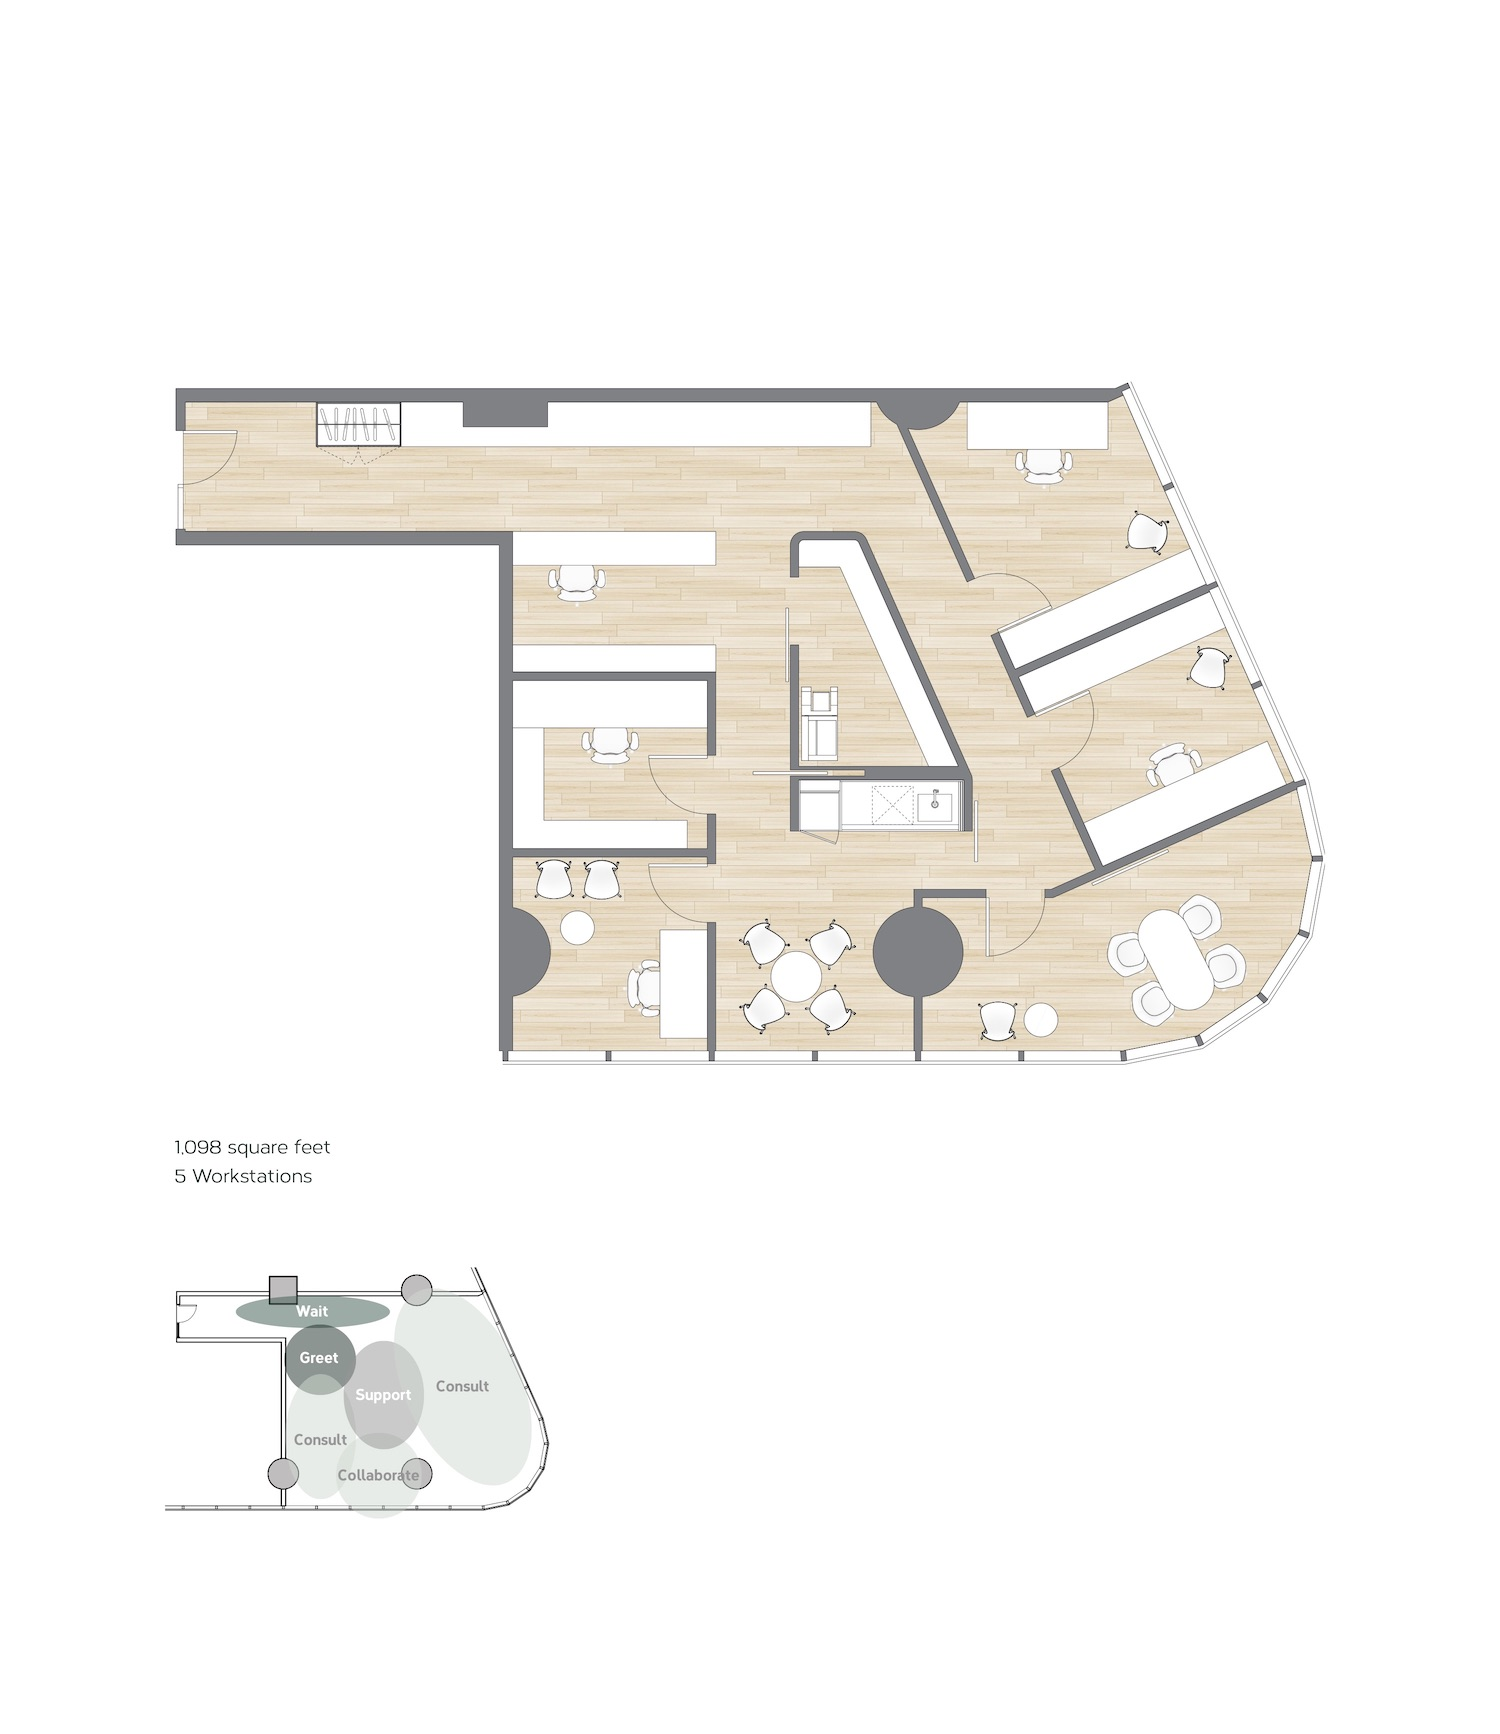 Test / Example Floorplan of an Office 02